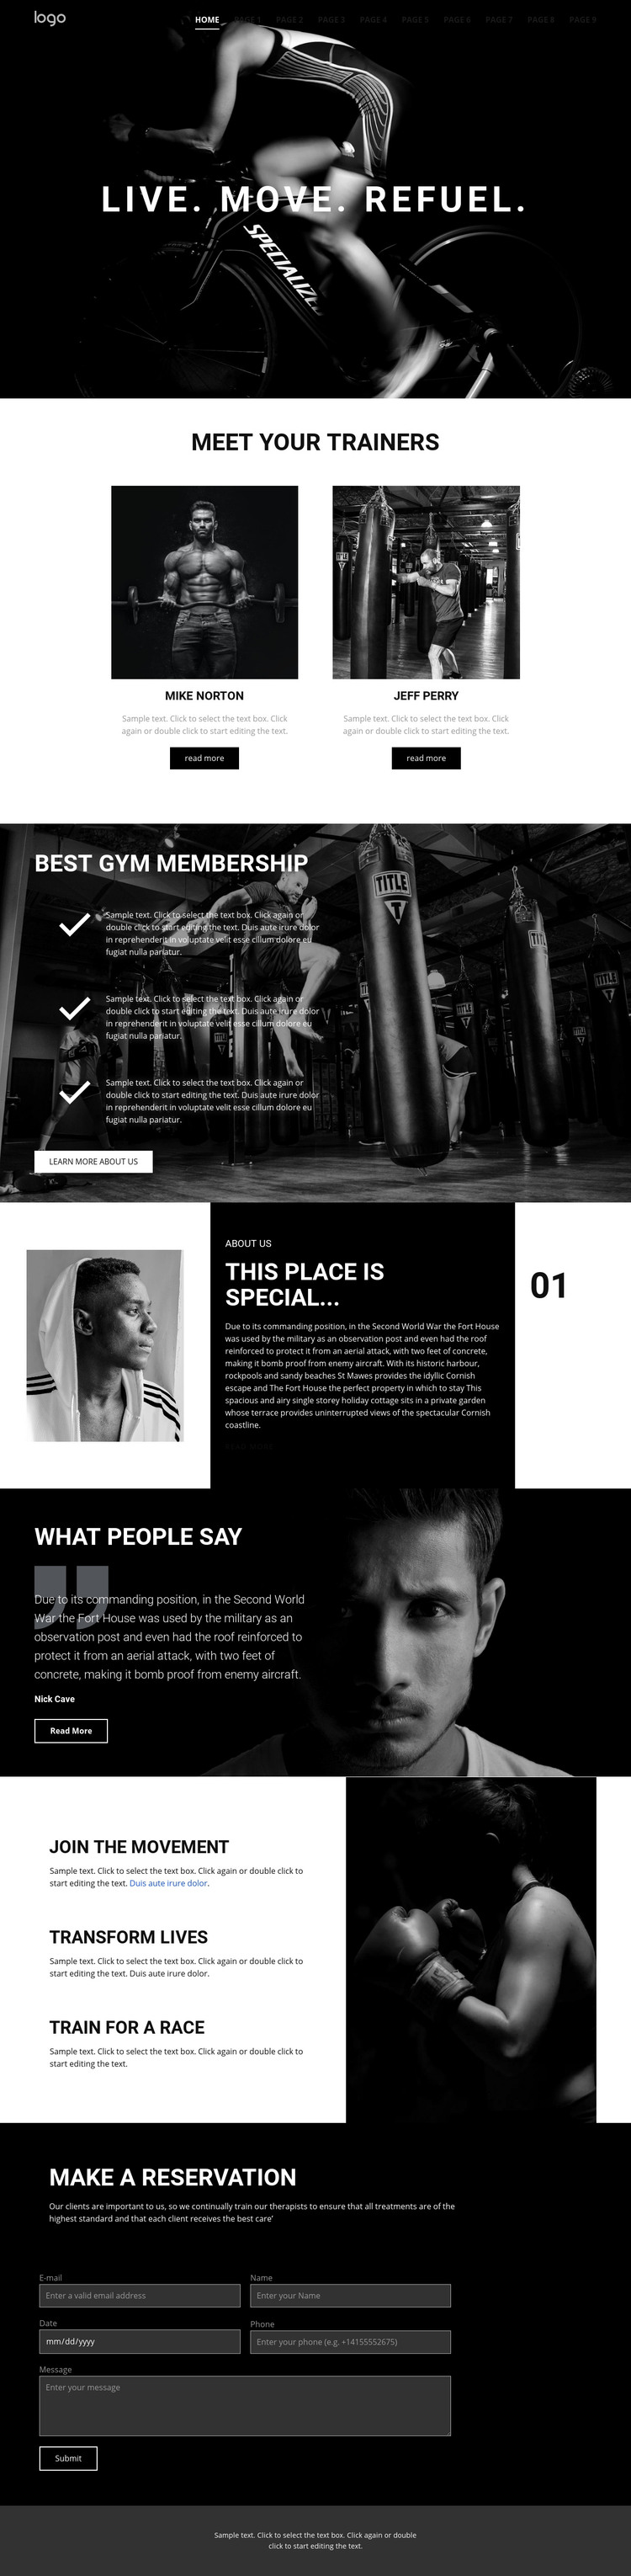 Refuel at power gym Homepage Design